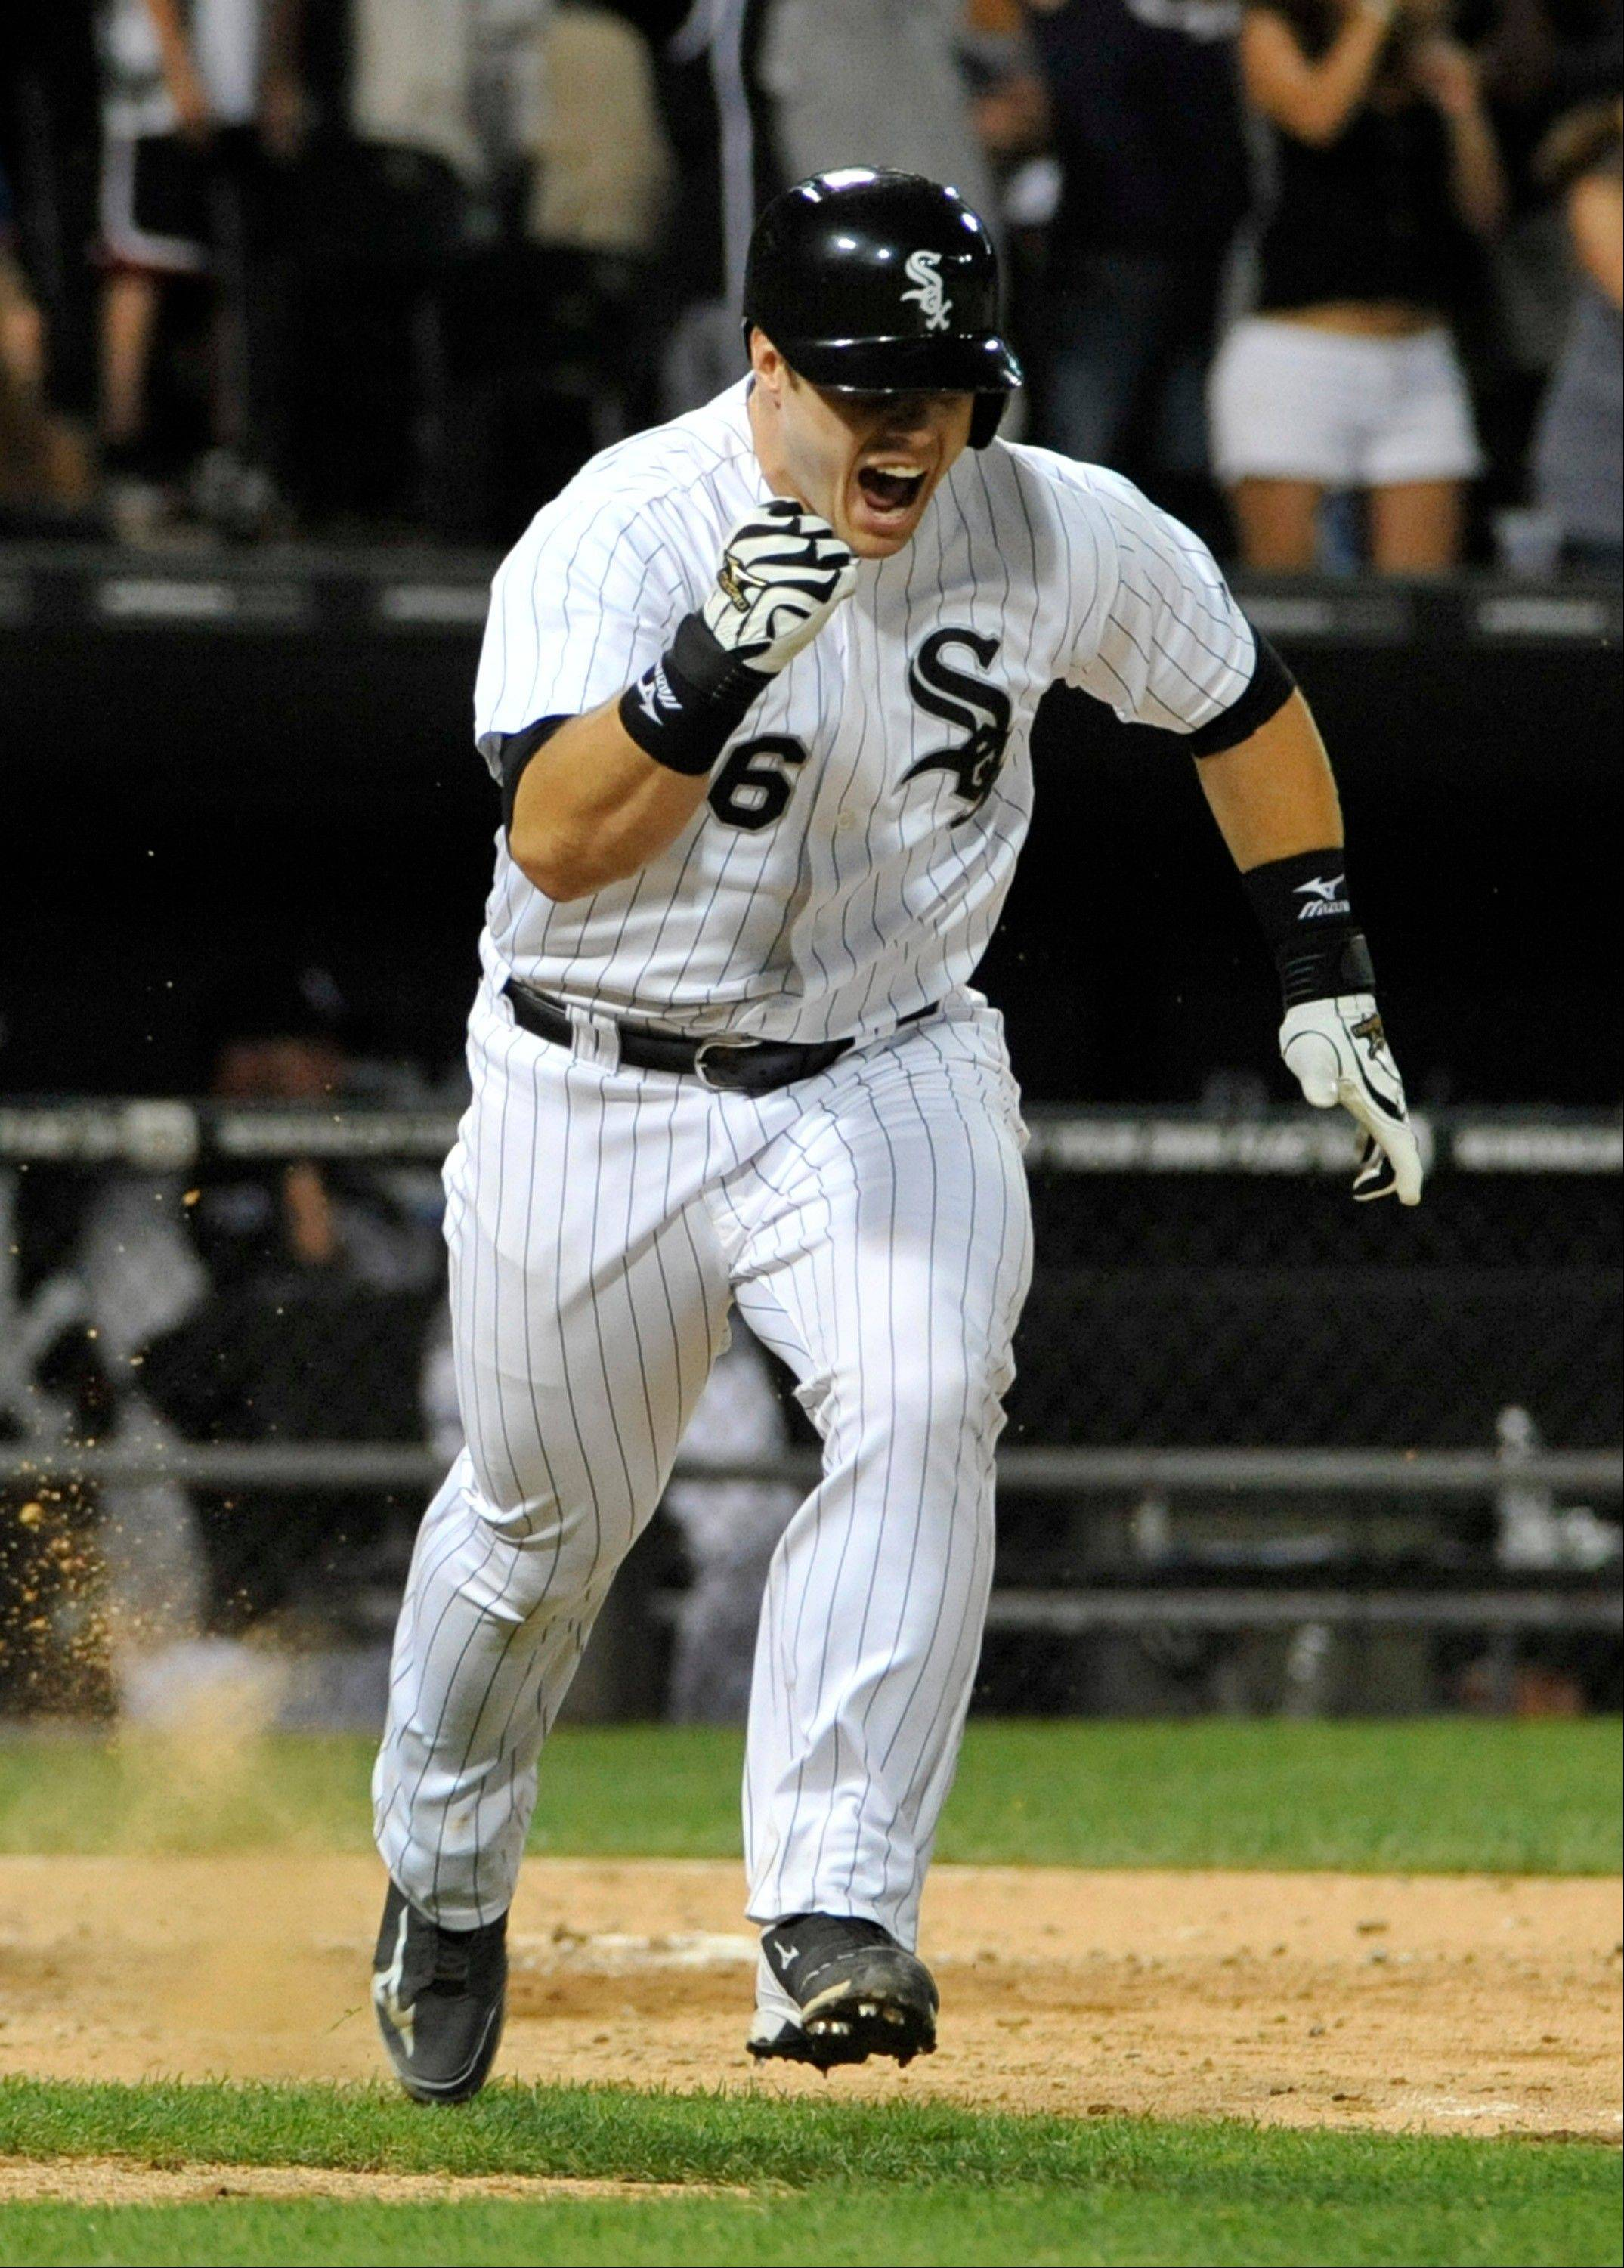 The White Sox' Josh Phegley celebrates his game-winning hit in the ninth inning against the Rangers on Saturday at U.S. Cellular Field.